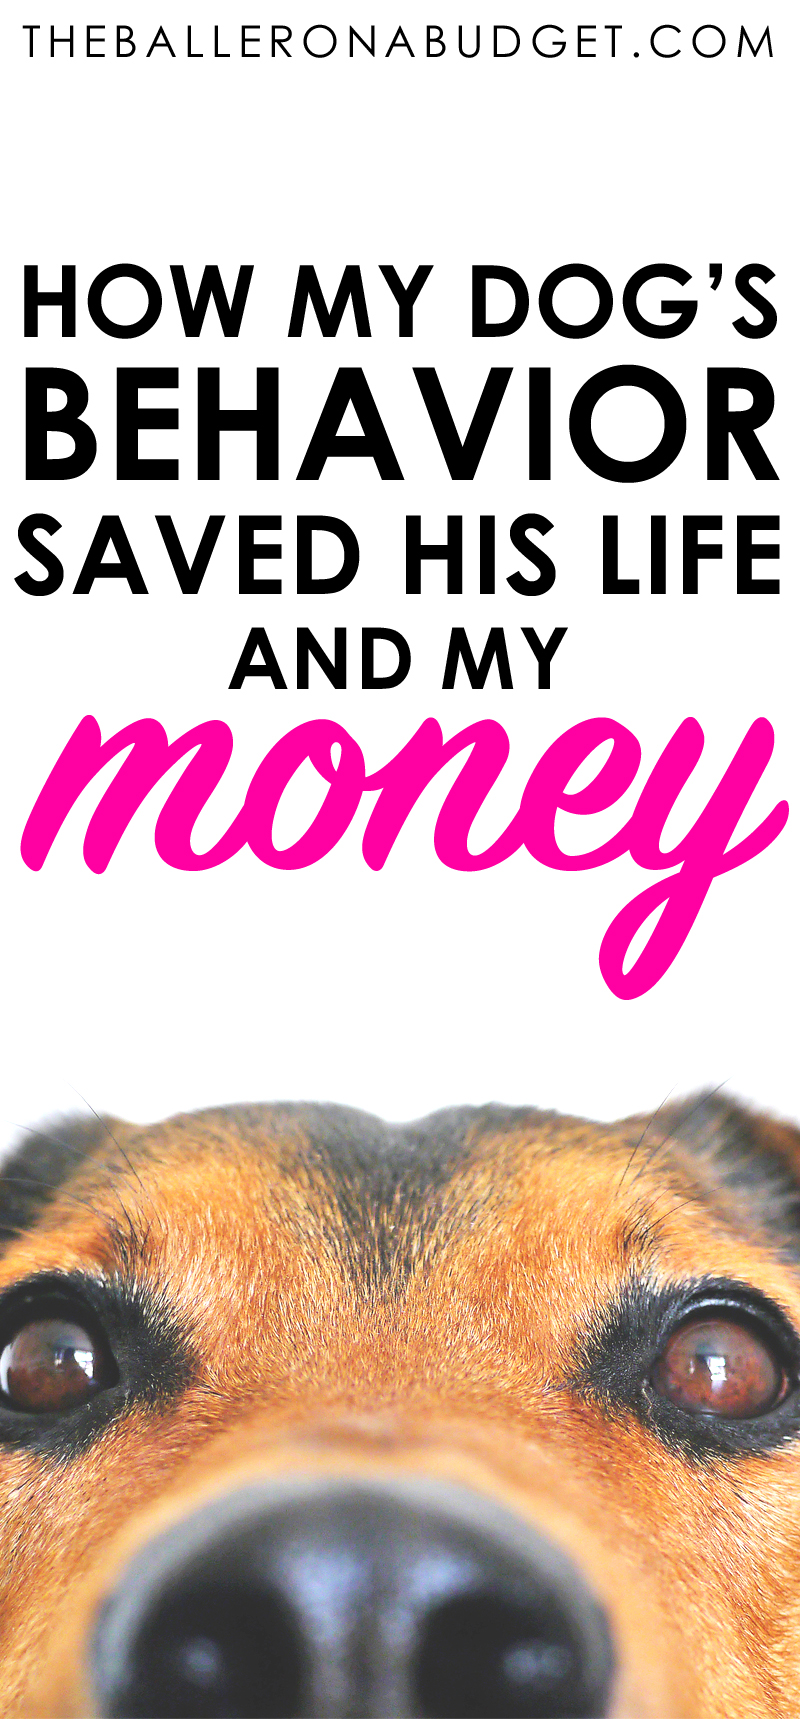 My pit bull Skooter almost died from blood loss, but not only did his behavior help us get him to the hospital - it helped us save a lot of money on his vet bill. Read more to see why having a well-mannered dog can save you money just like Skooter did. - www.theballeronabudget.com